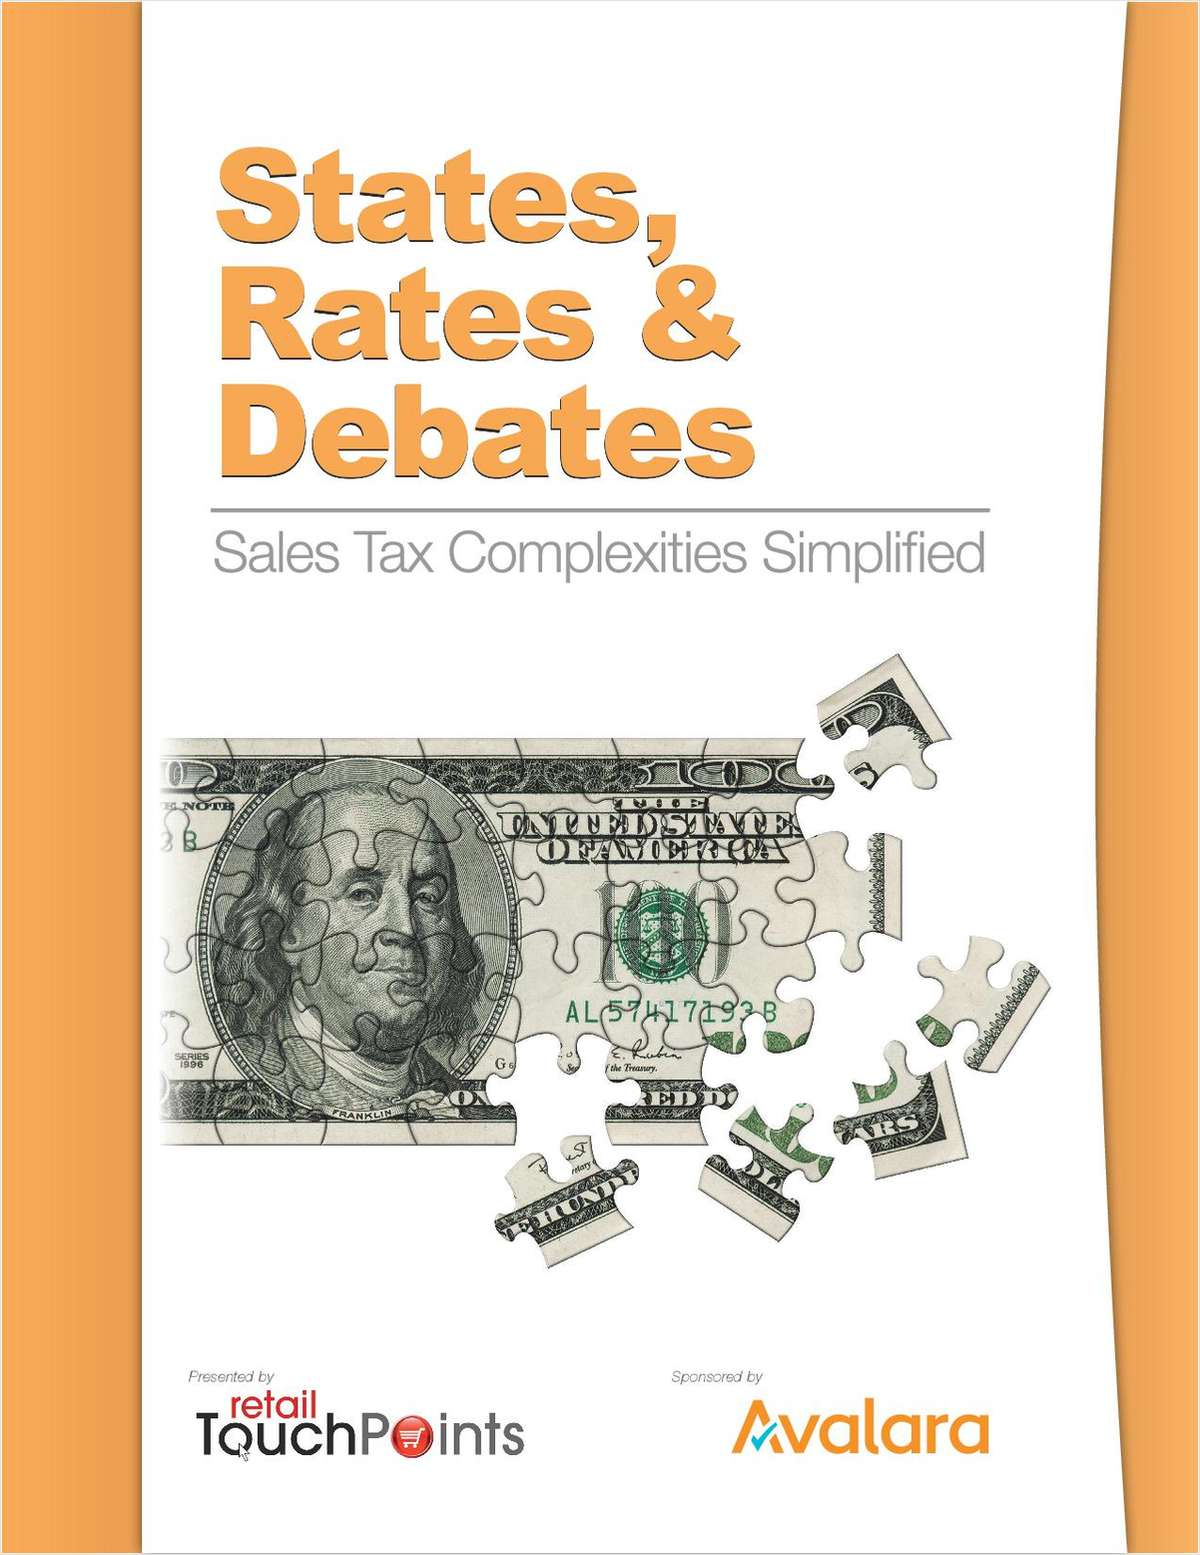 States, Rates & Debates: Sales Tax Complexities Simplified for Retail and POS